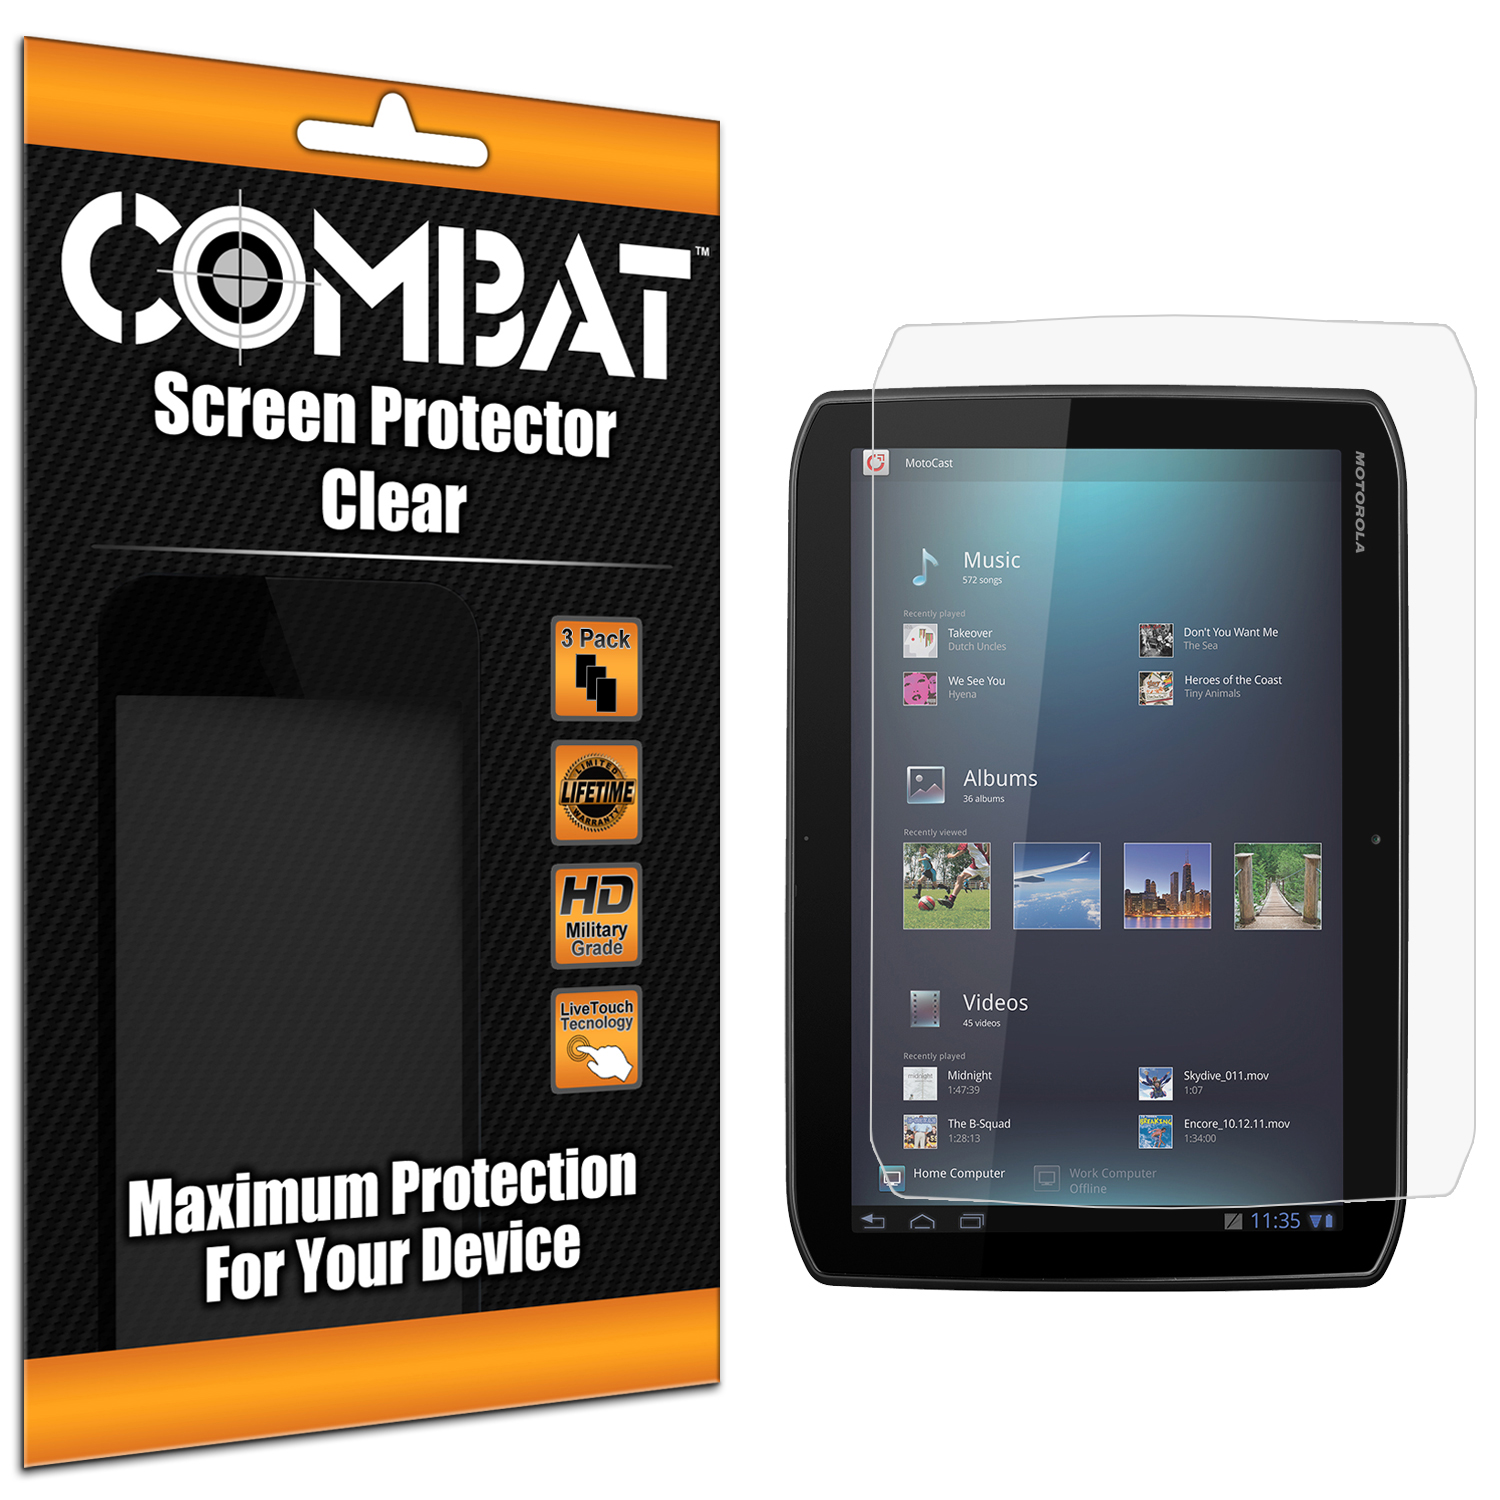 Motorola Droid XYBoard 8.2 Combat 3 Pack HD Clear Screen Protector